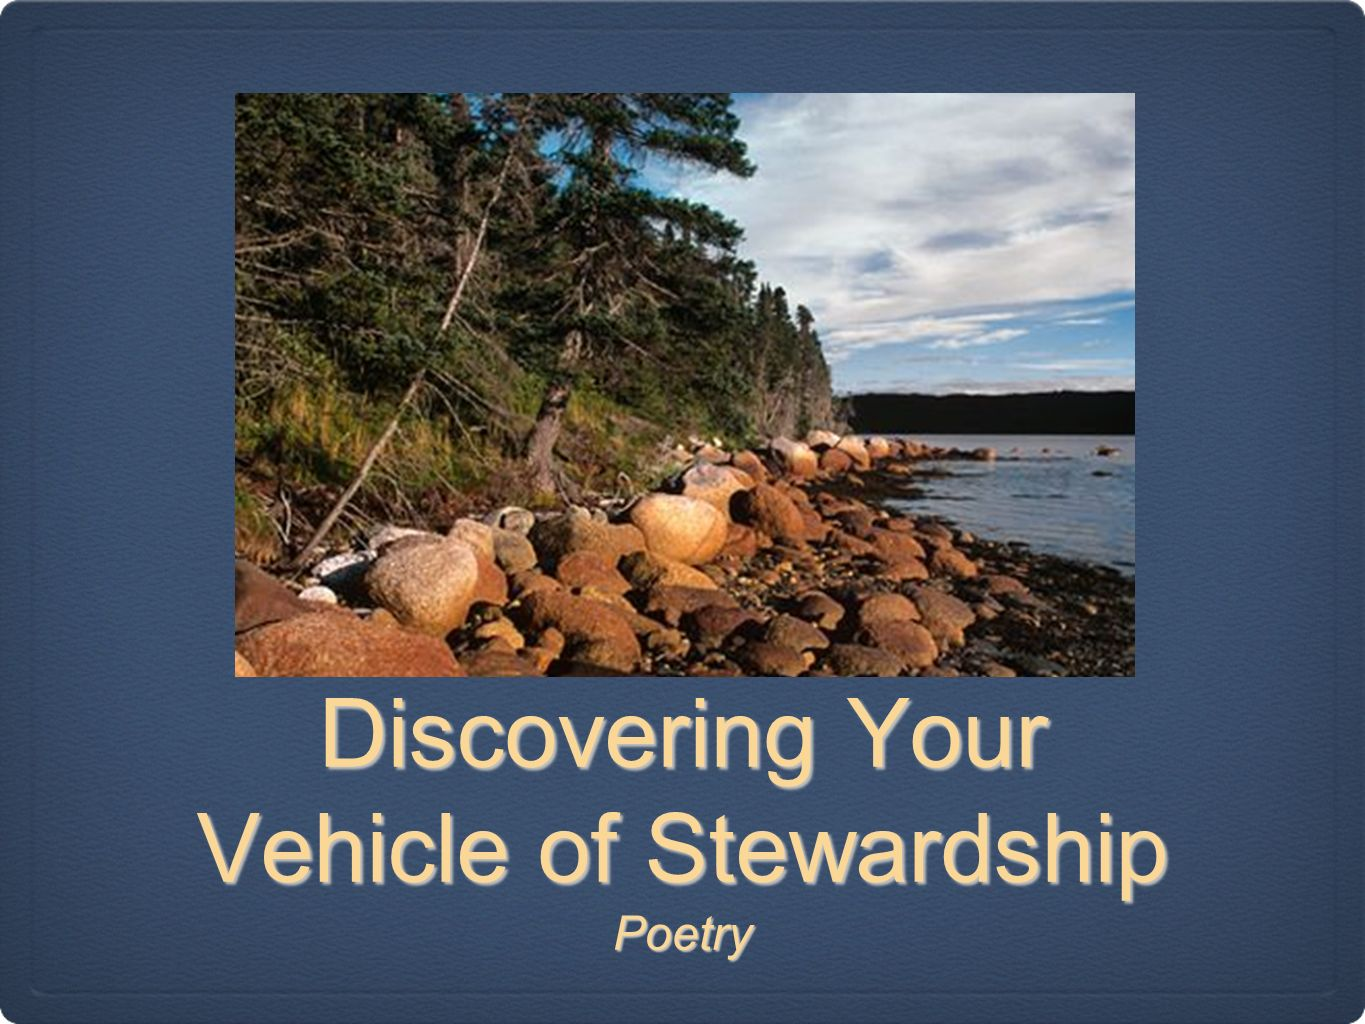 Discovering Your Vehicle of Stewardship Poetry